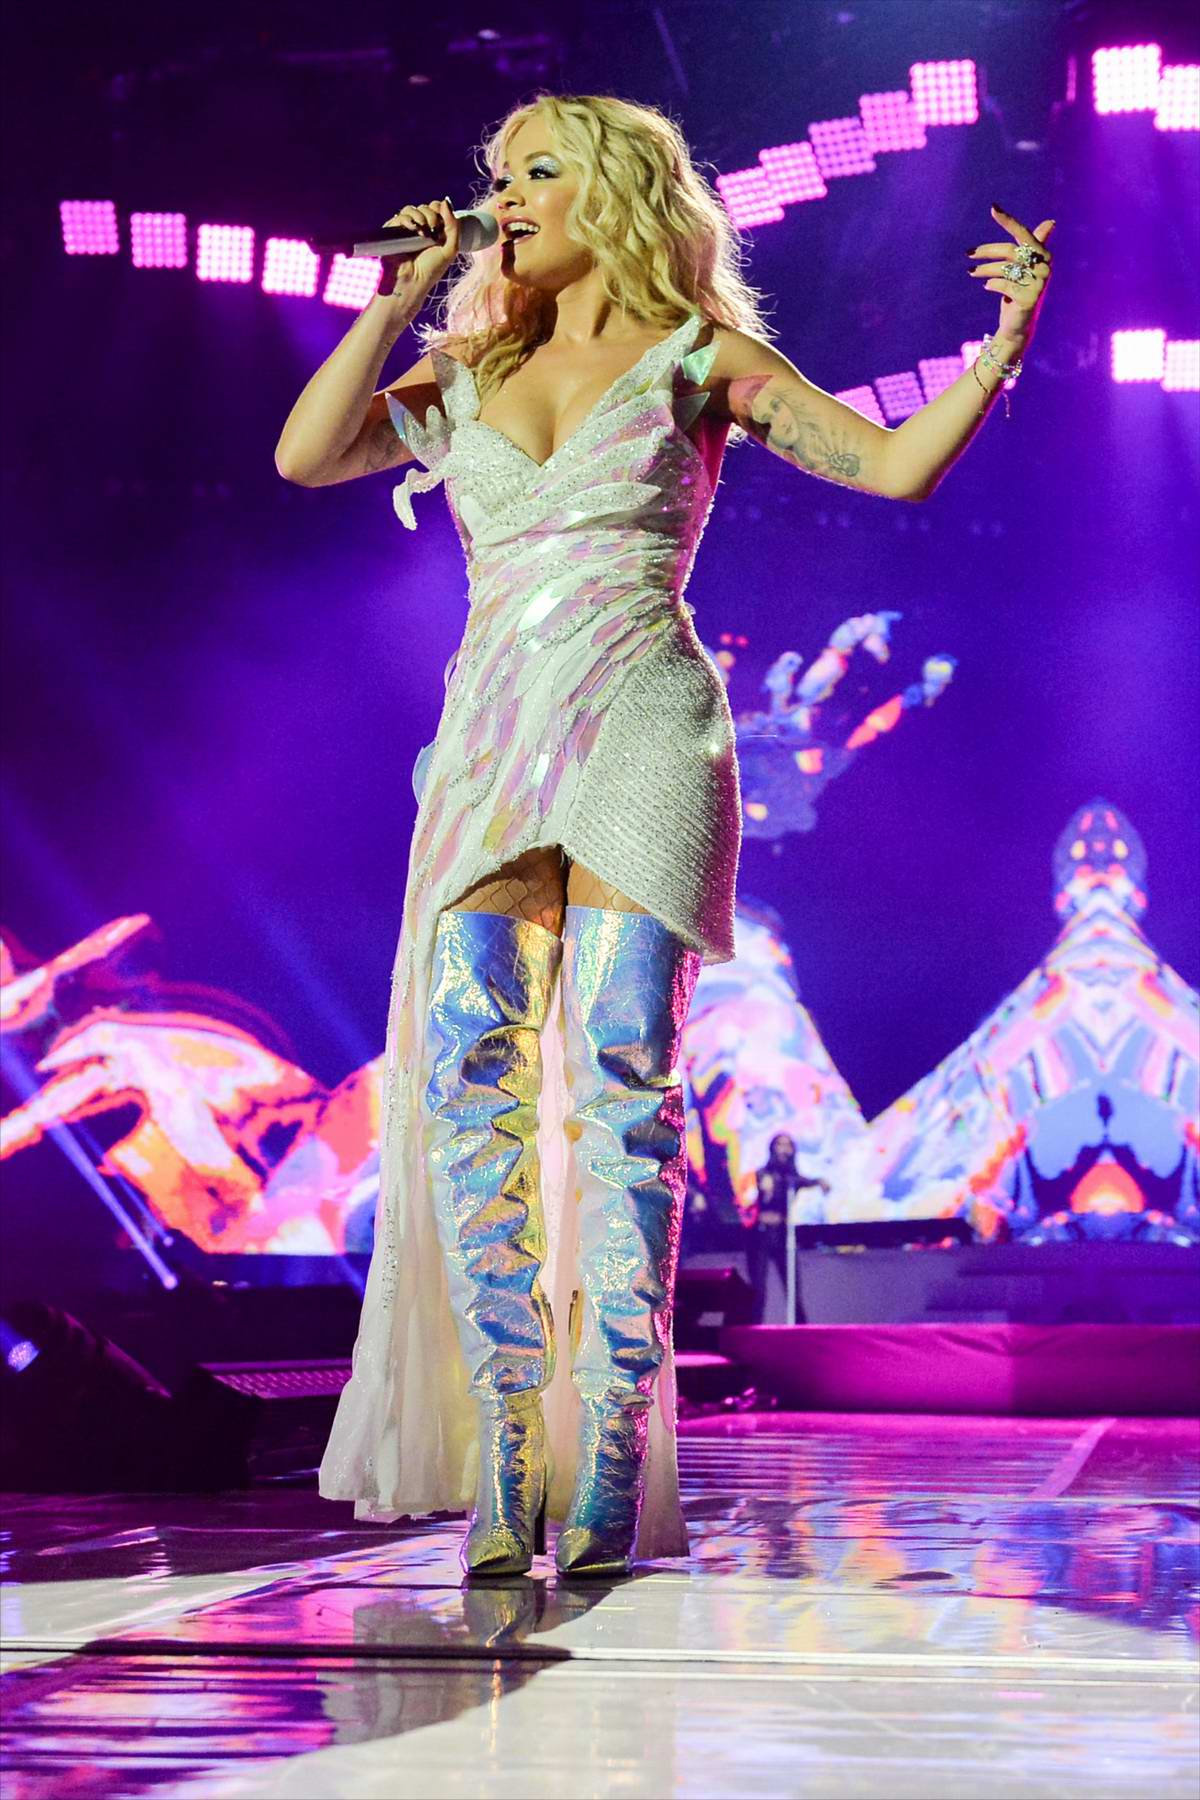 Rita Ora performs onstage at the Motorpoint Arena in Cardiff, Wales